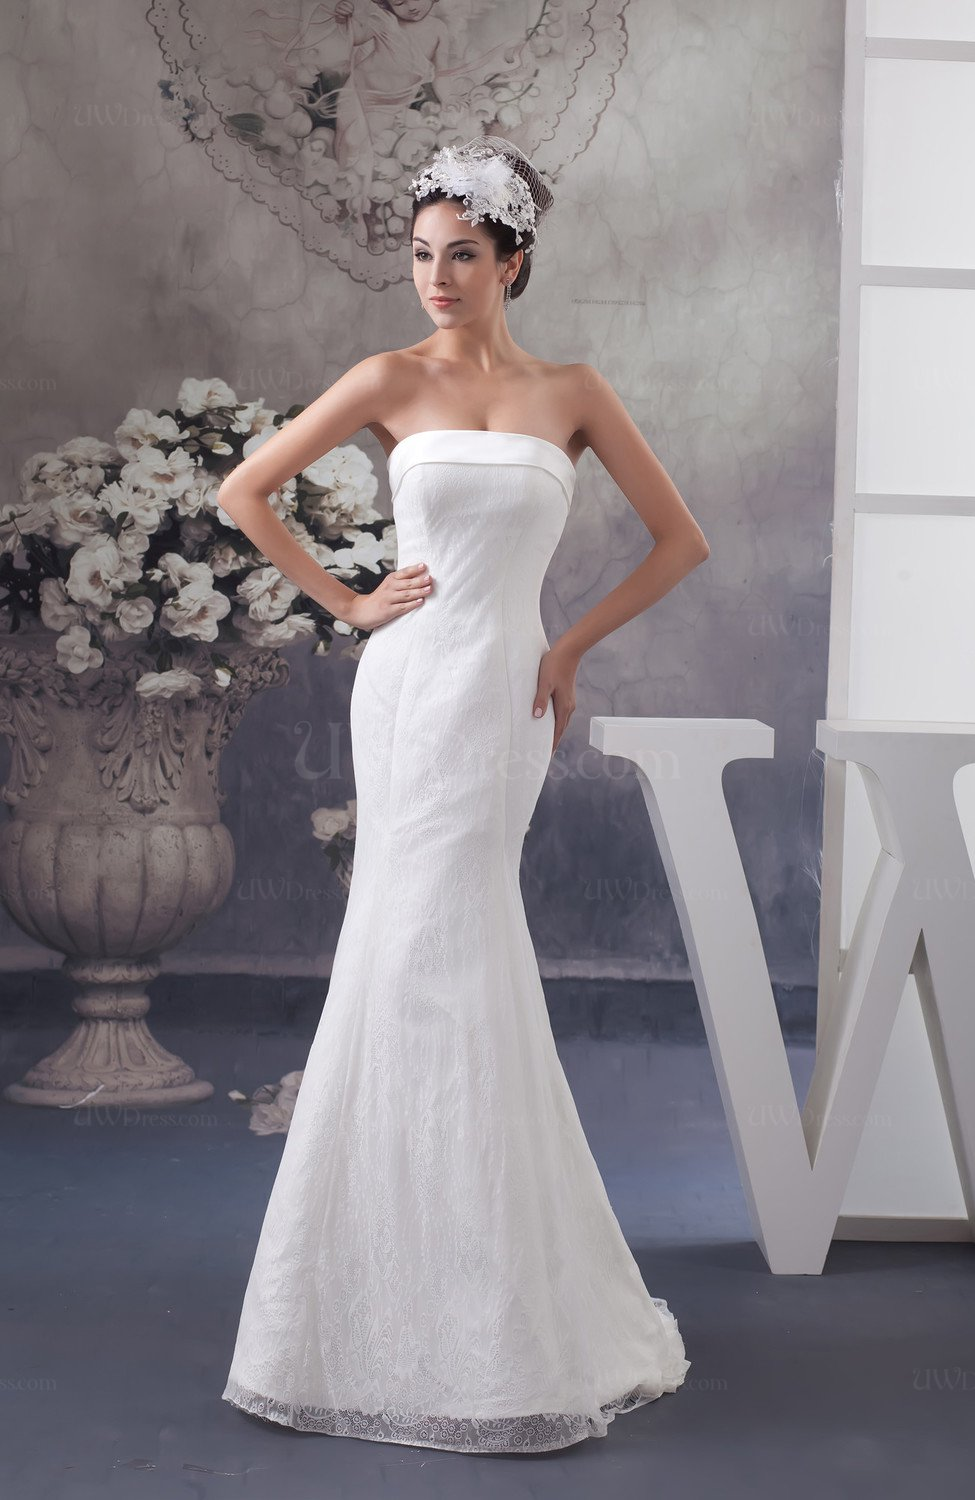 Mermaid bridal gowns allure low back backless glamorous for Strapless and backless wedding dress